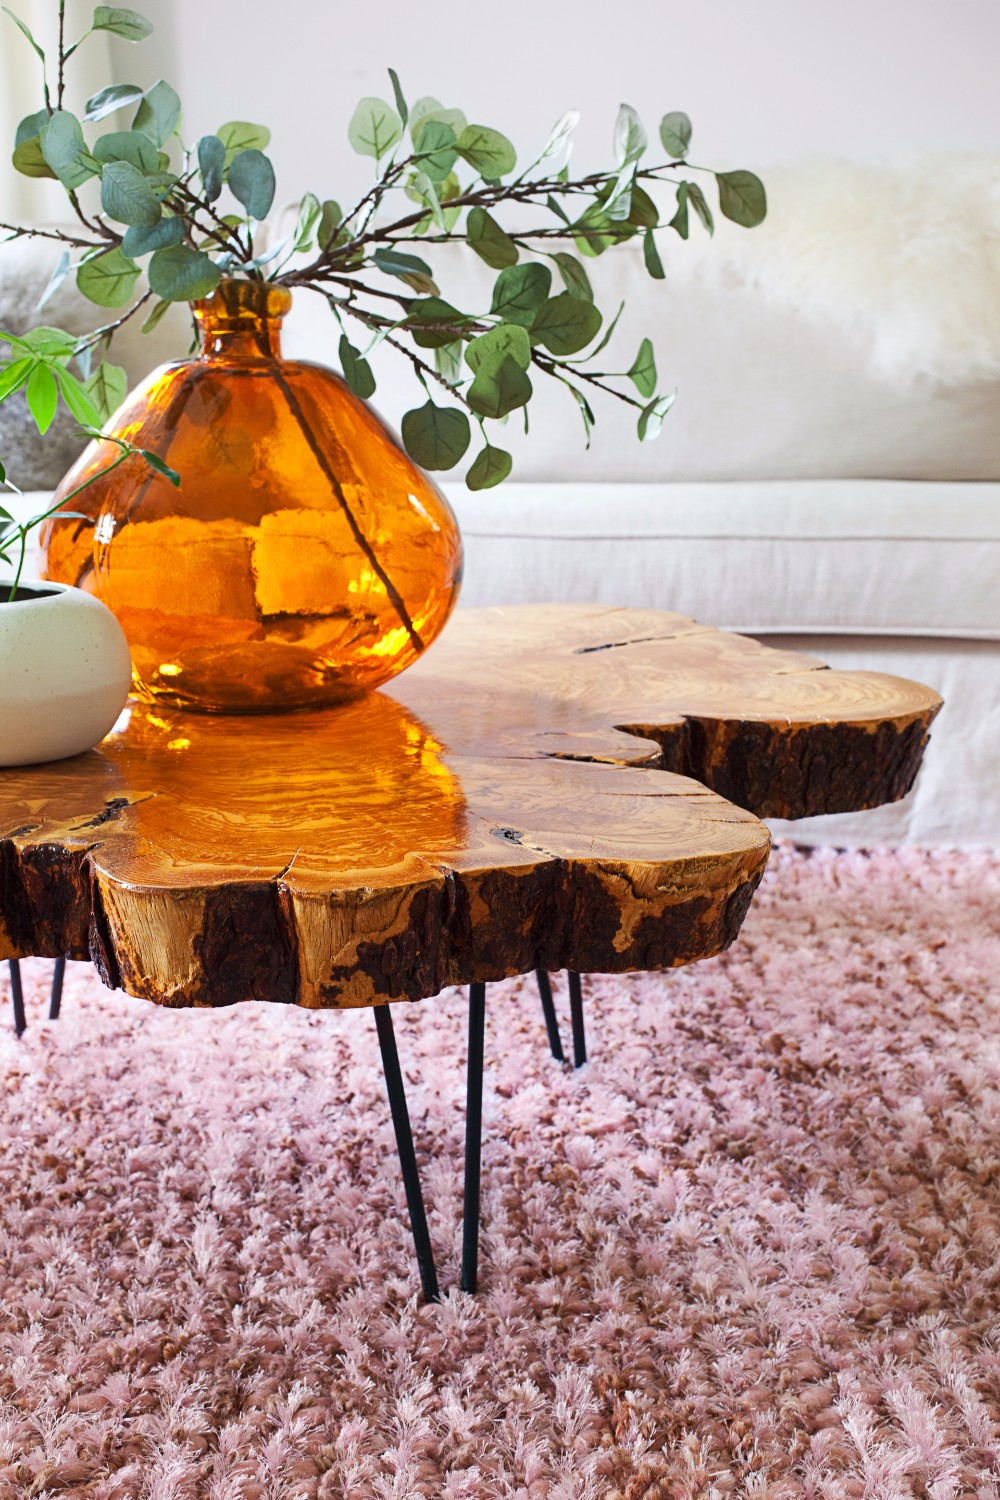 Interior Design Trends- Materials You Should Use in Your Home Decor